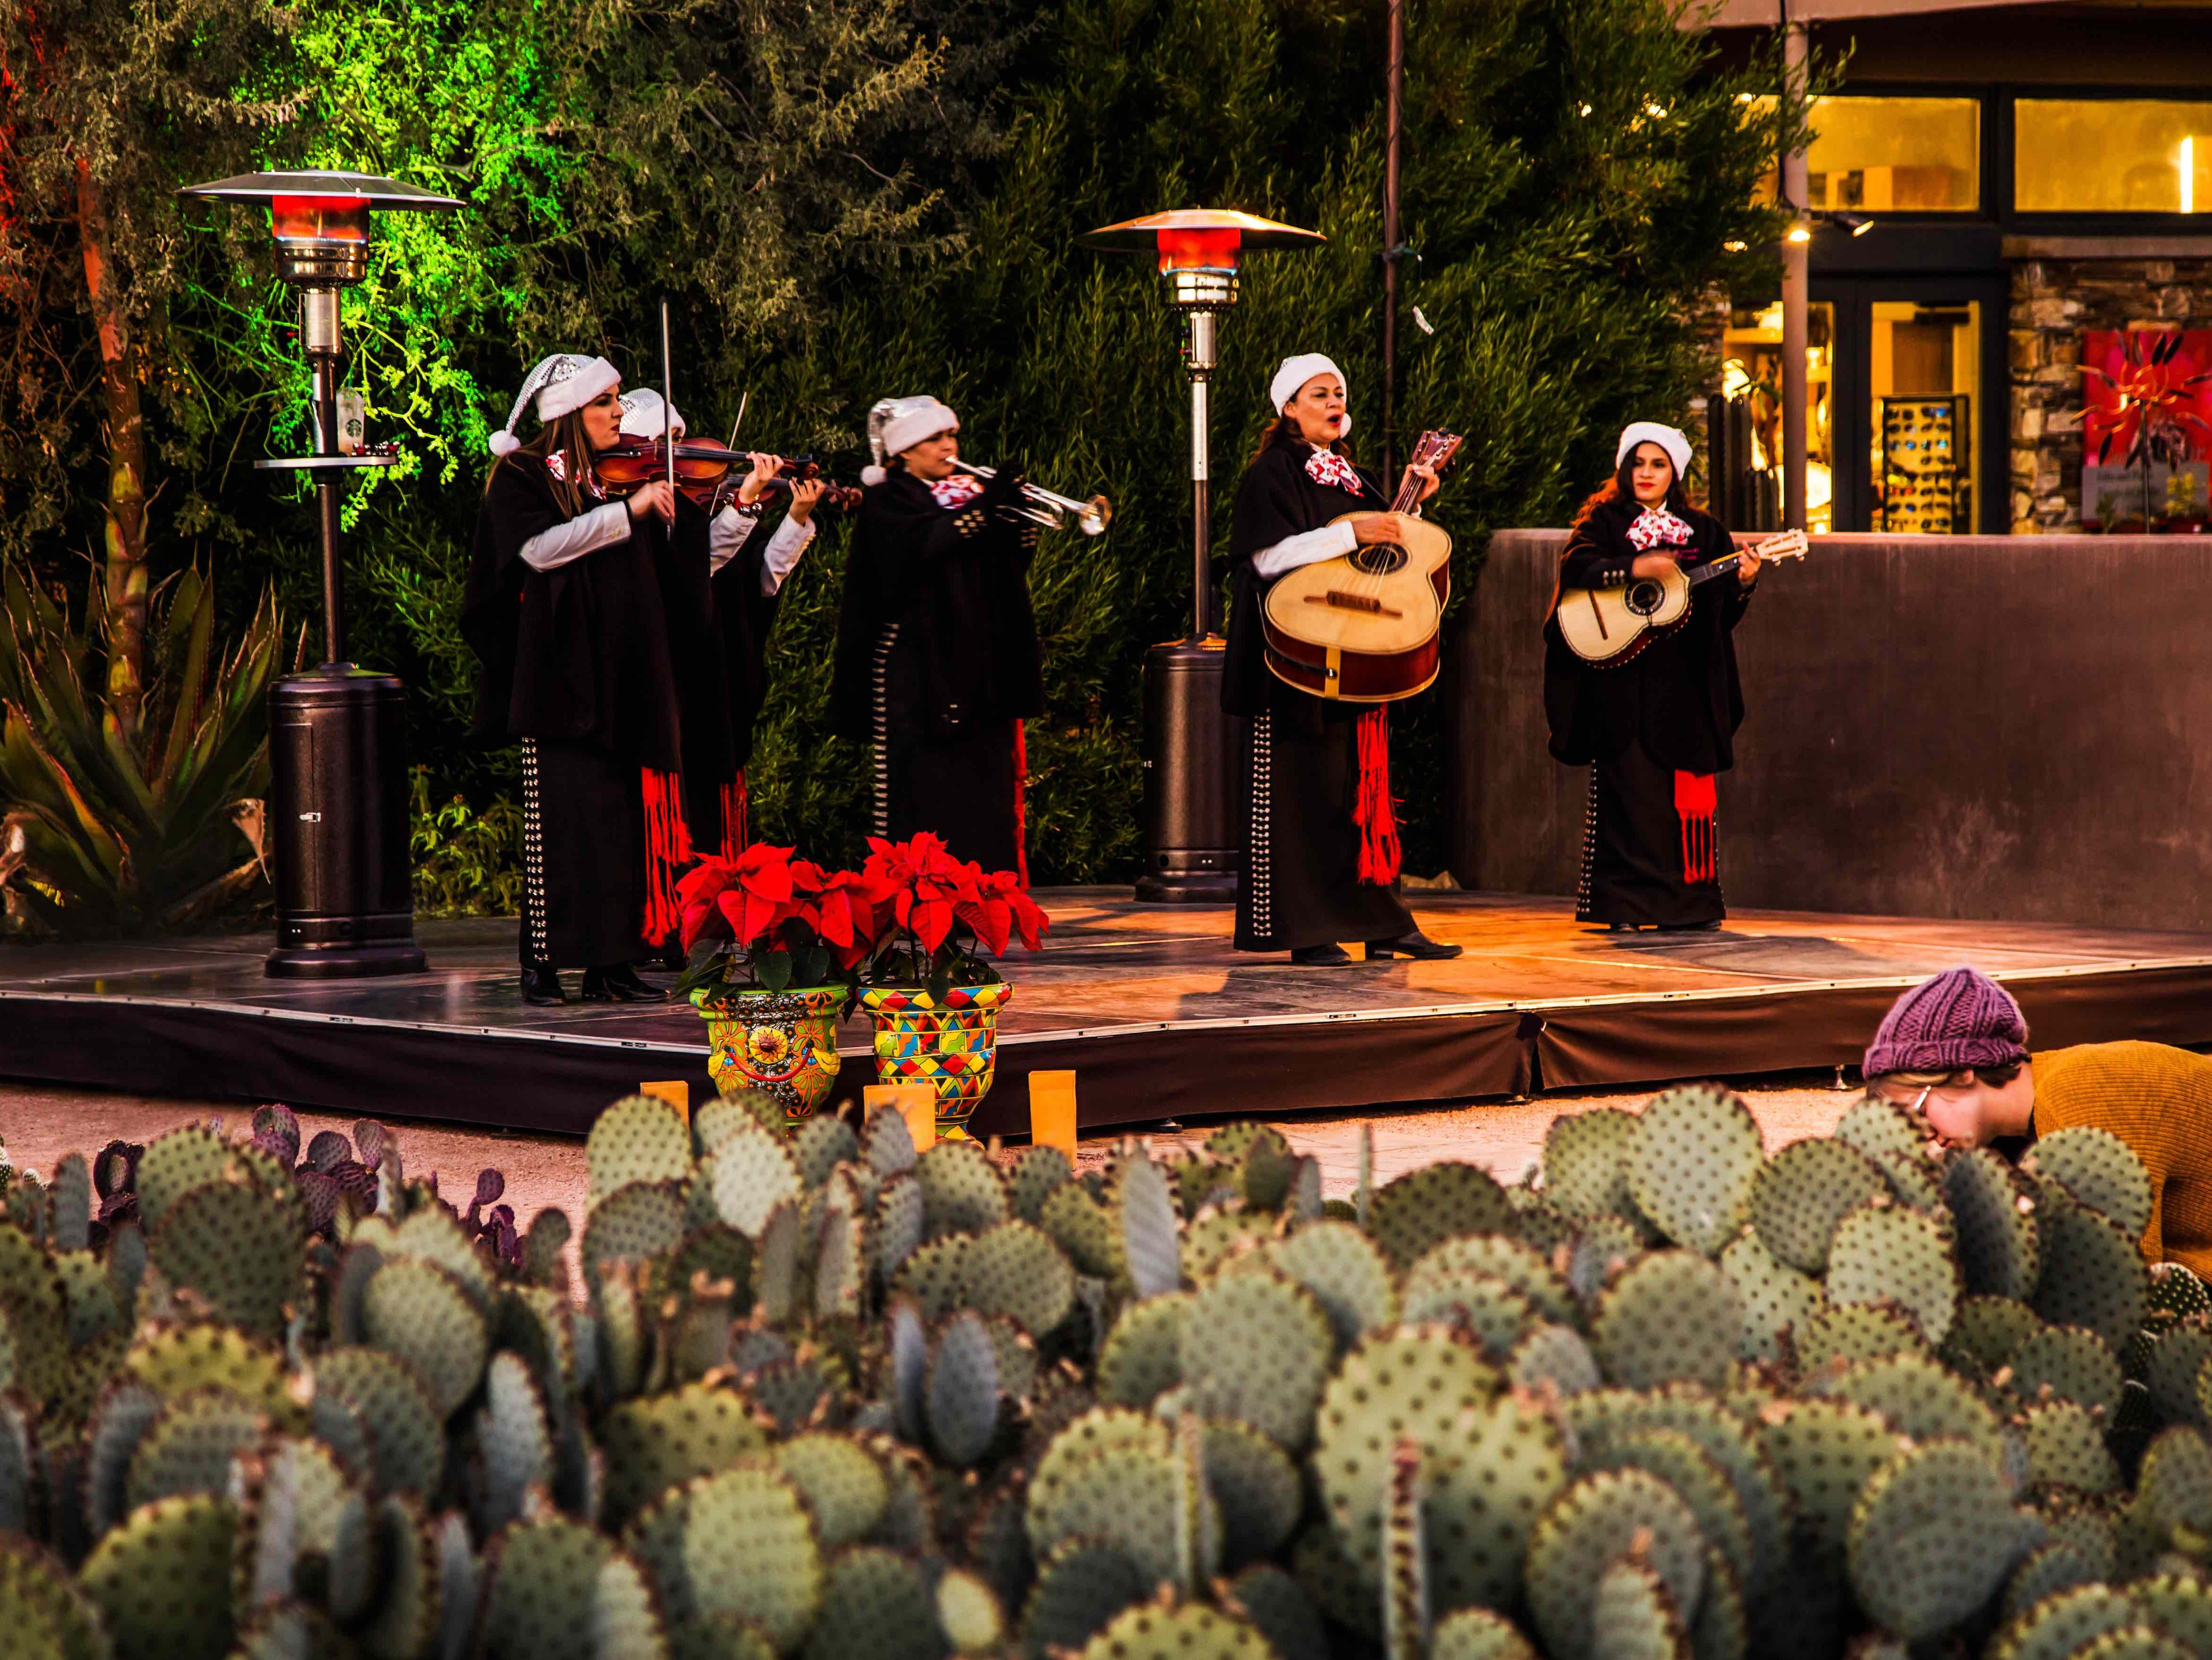 Las Noches de las Luminarias at the Desert Botanical Garden.